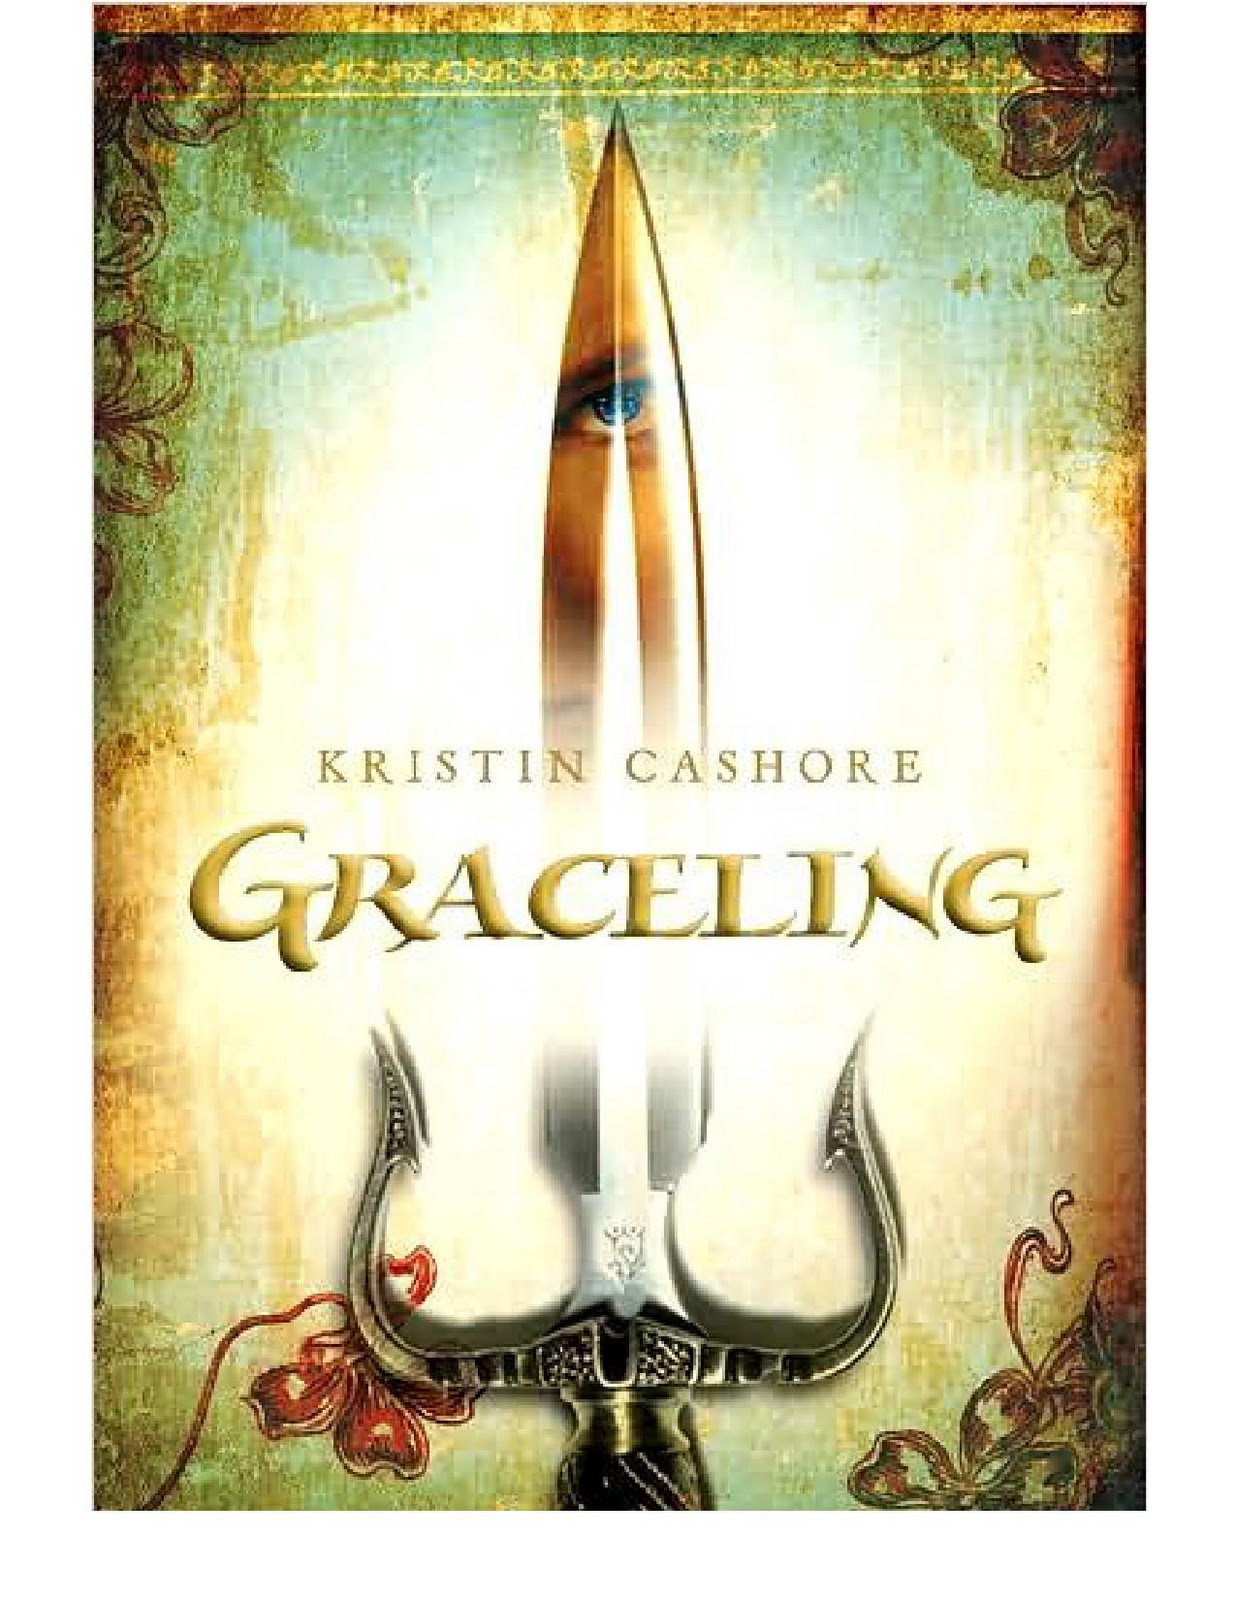 Graceling by Kristin Cashore - favorite book of 2014 by freshfromthe.com